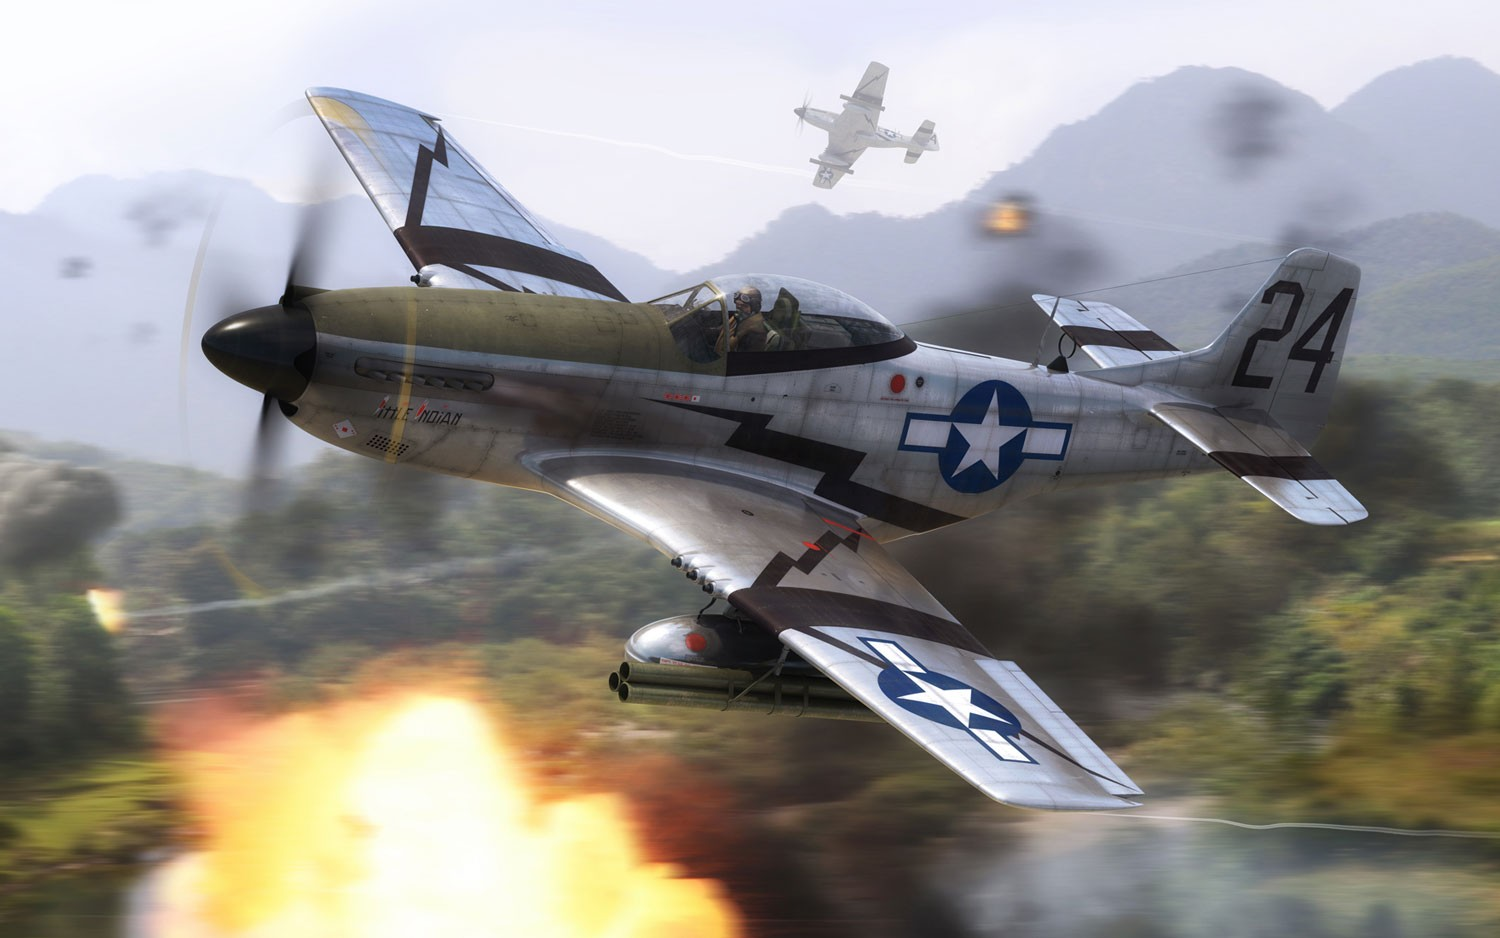 a050131-p51-mustang-artwork--low.jpg